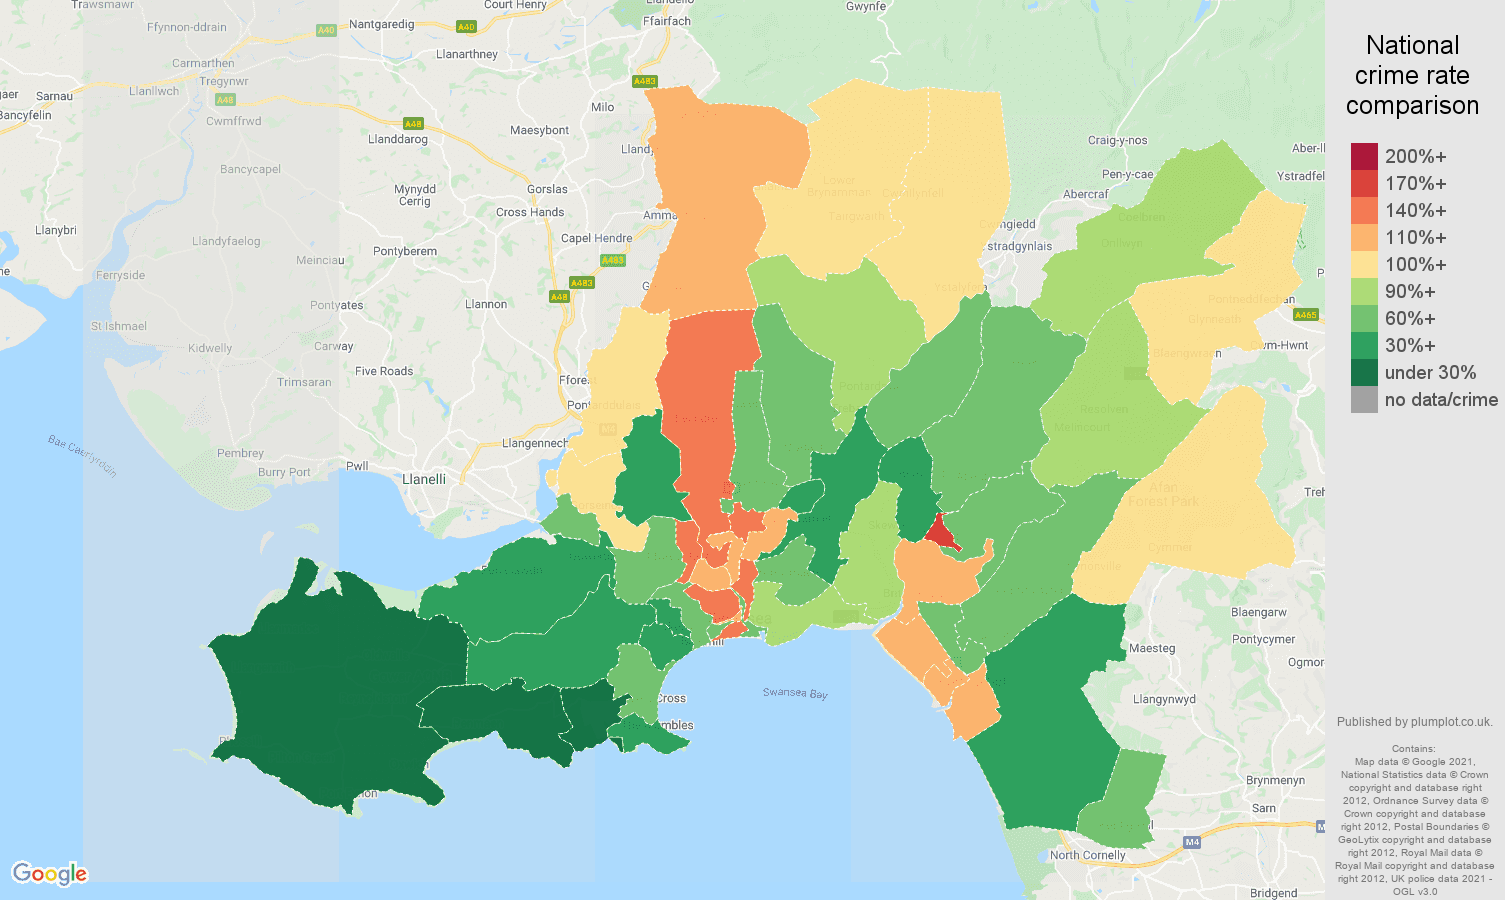 West Glamorgan violent crime rate comparison map